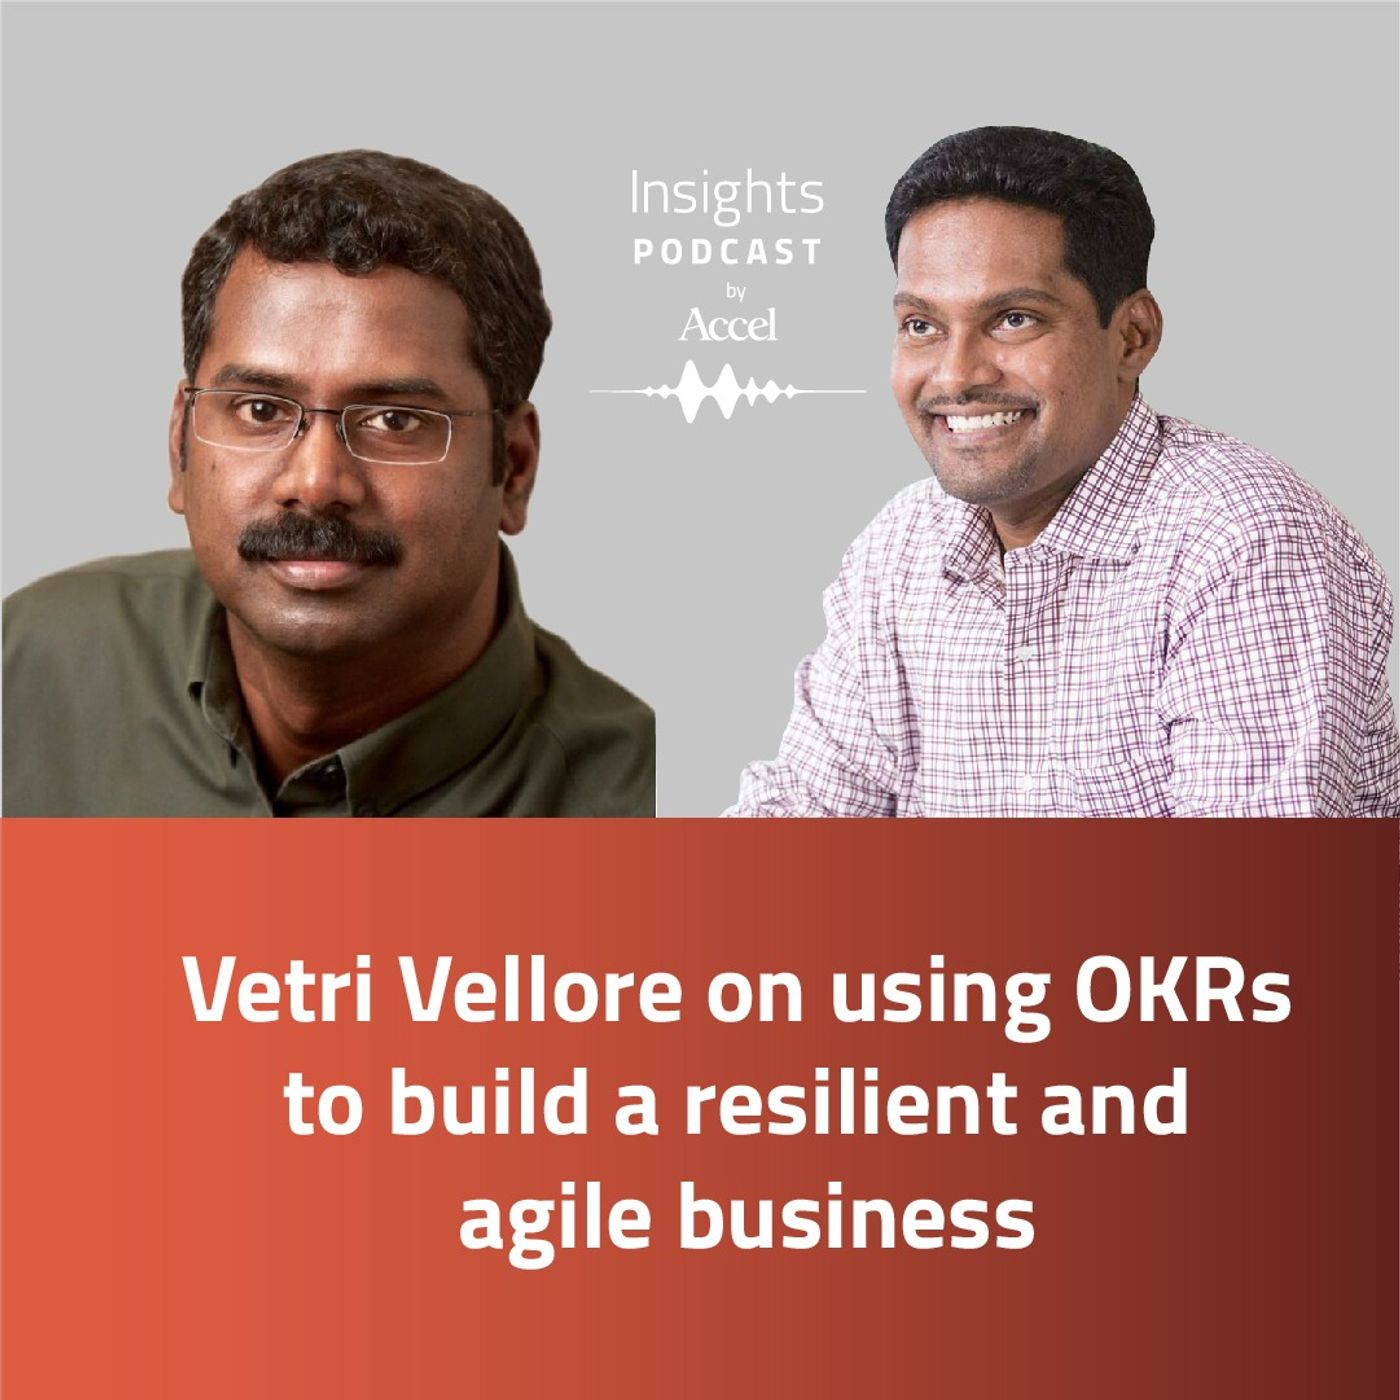 INSIGHTS #55 - Vetri Vellore on using OKRs to build a resilient and agile business